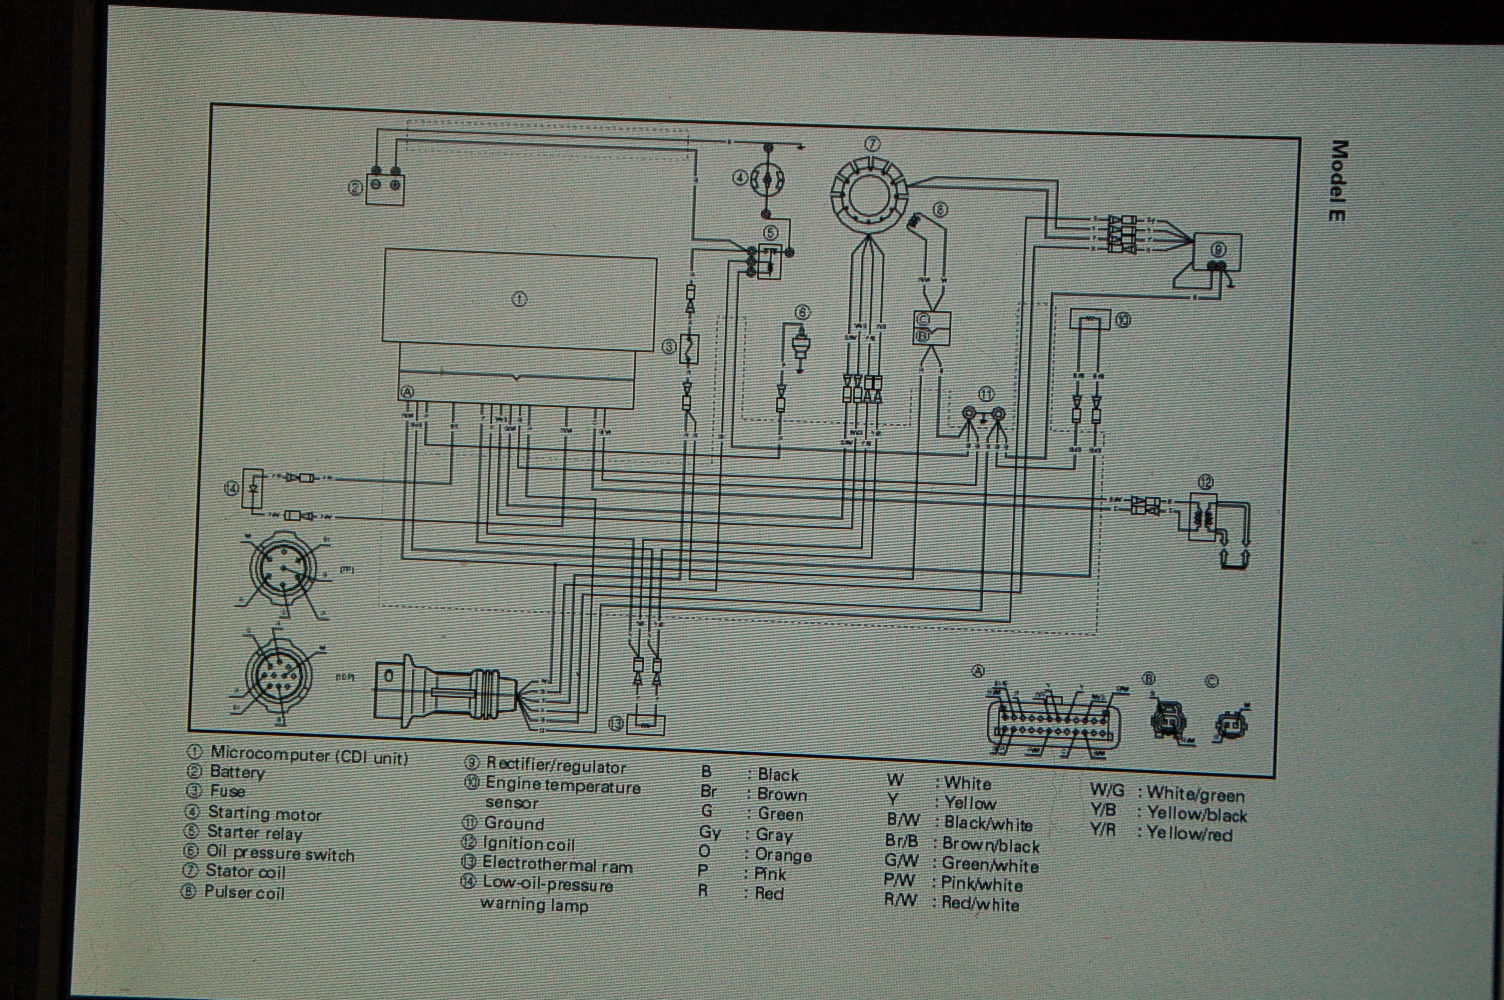 hight resolution of 30 hp yamaha outboard wiring wiring diagram name30 hp yamaha outboard wiring wiring diagram expert 30